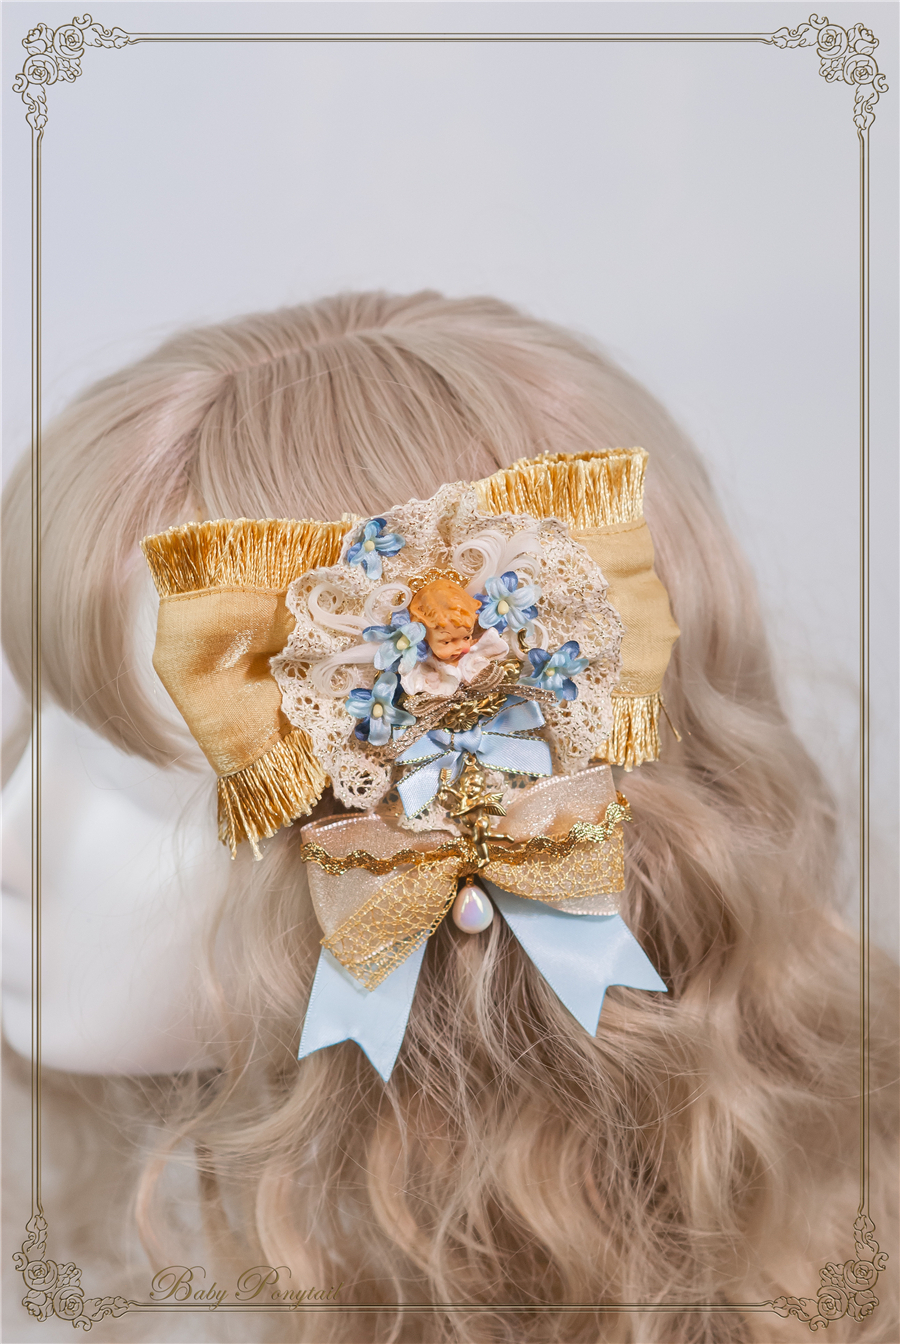 Baby Ponytail_Stock photo_Circus Princess_Angel Brooch Sax01.jpg